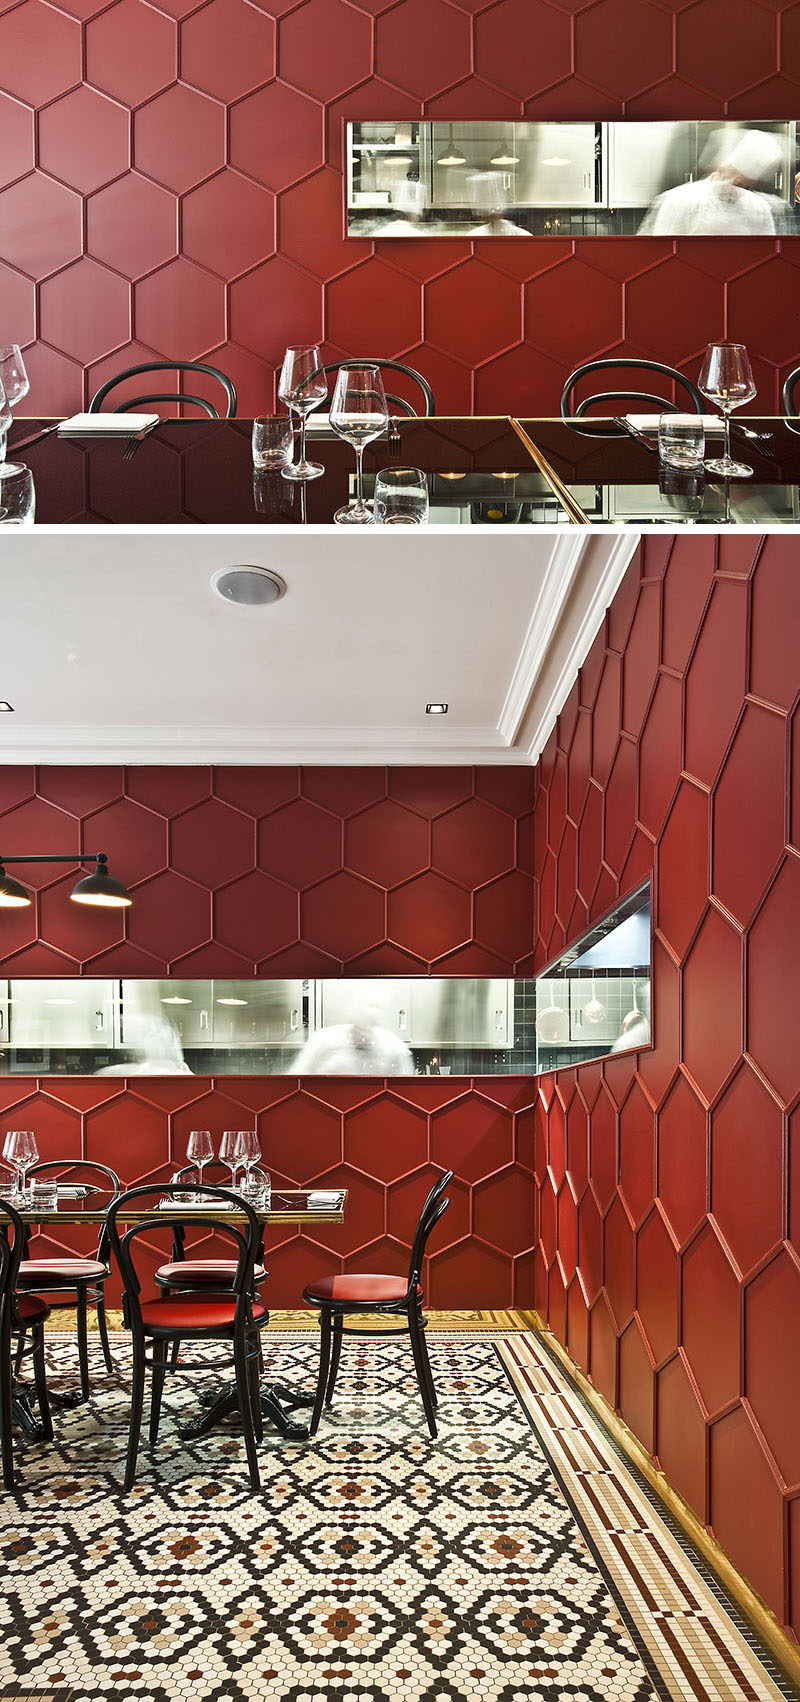 19 Ideas For Using Hexagons In Interior Design And Architecture // Karine Lewkowicz, the designer of this Milan restaurant, used wooden moulding to create a 3D honeycomb pattern on the walls.